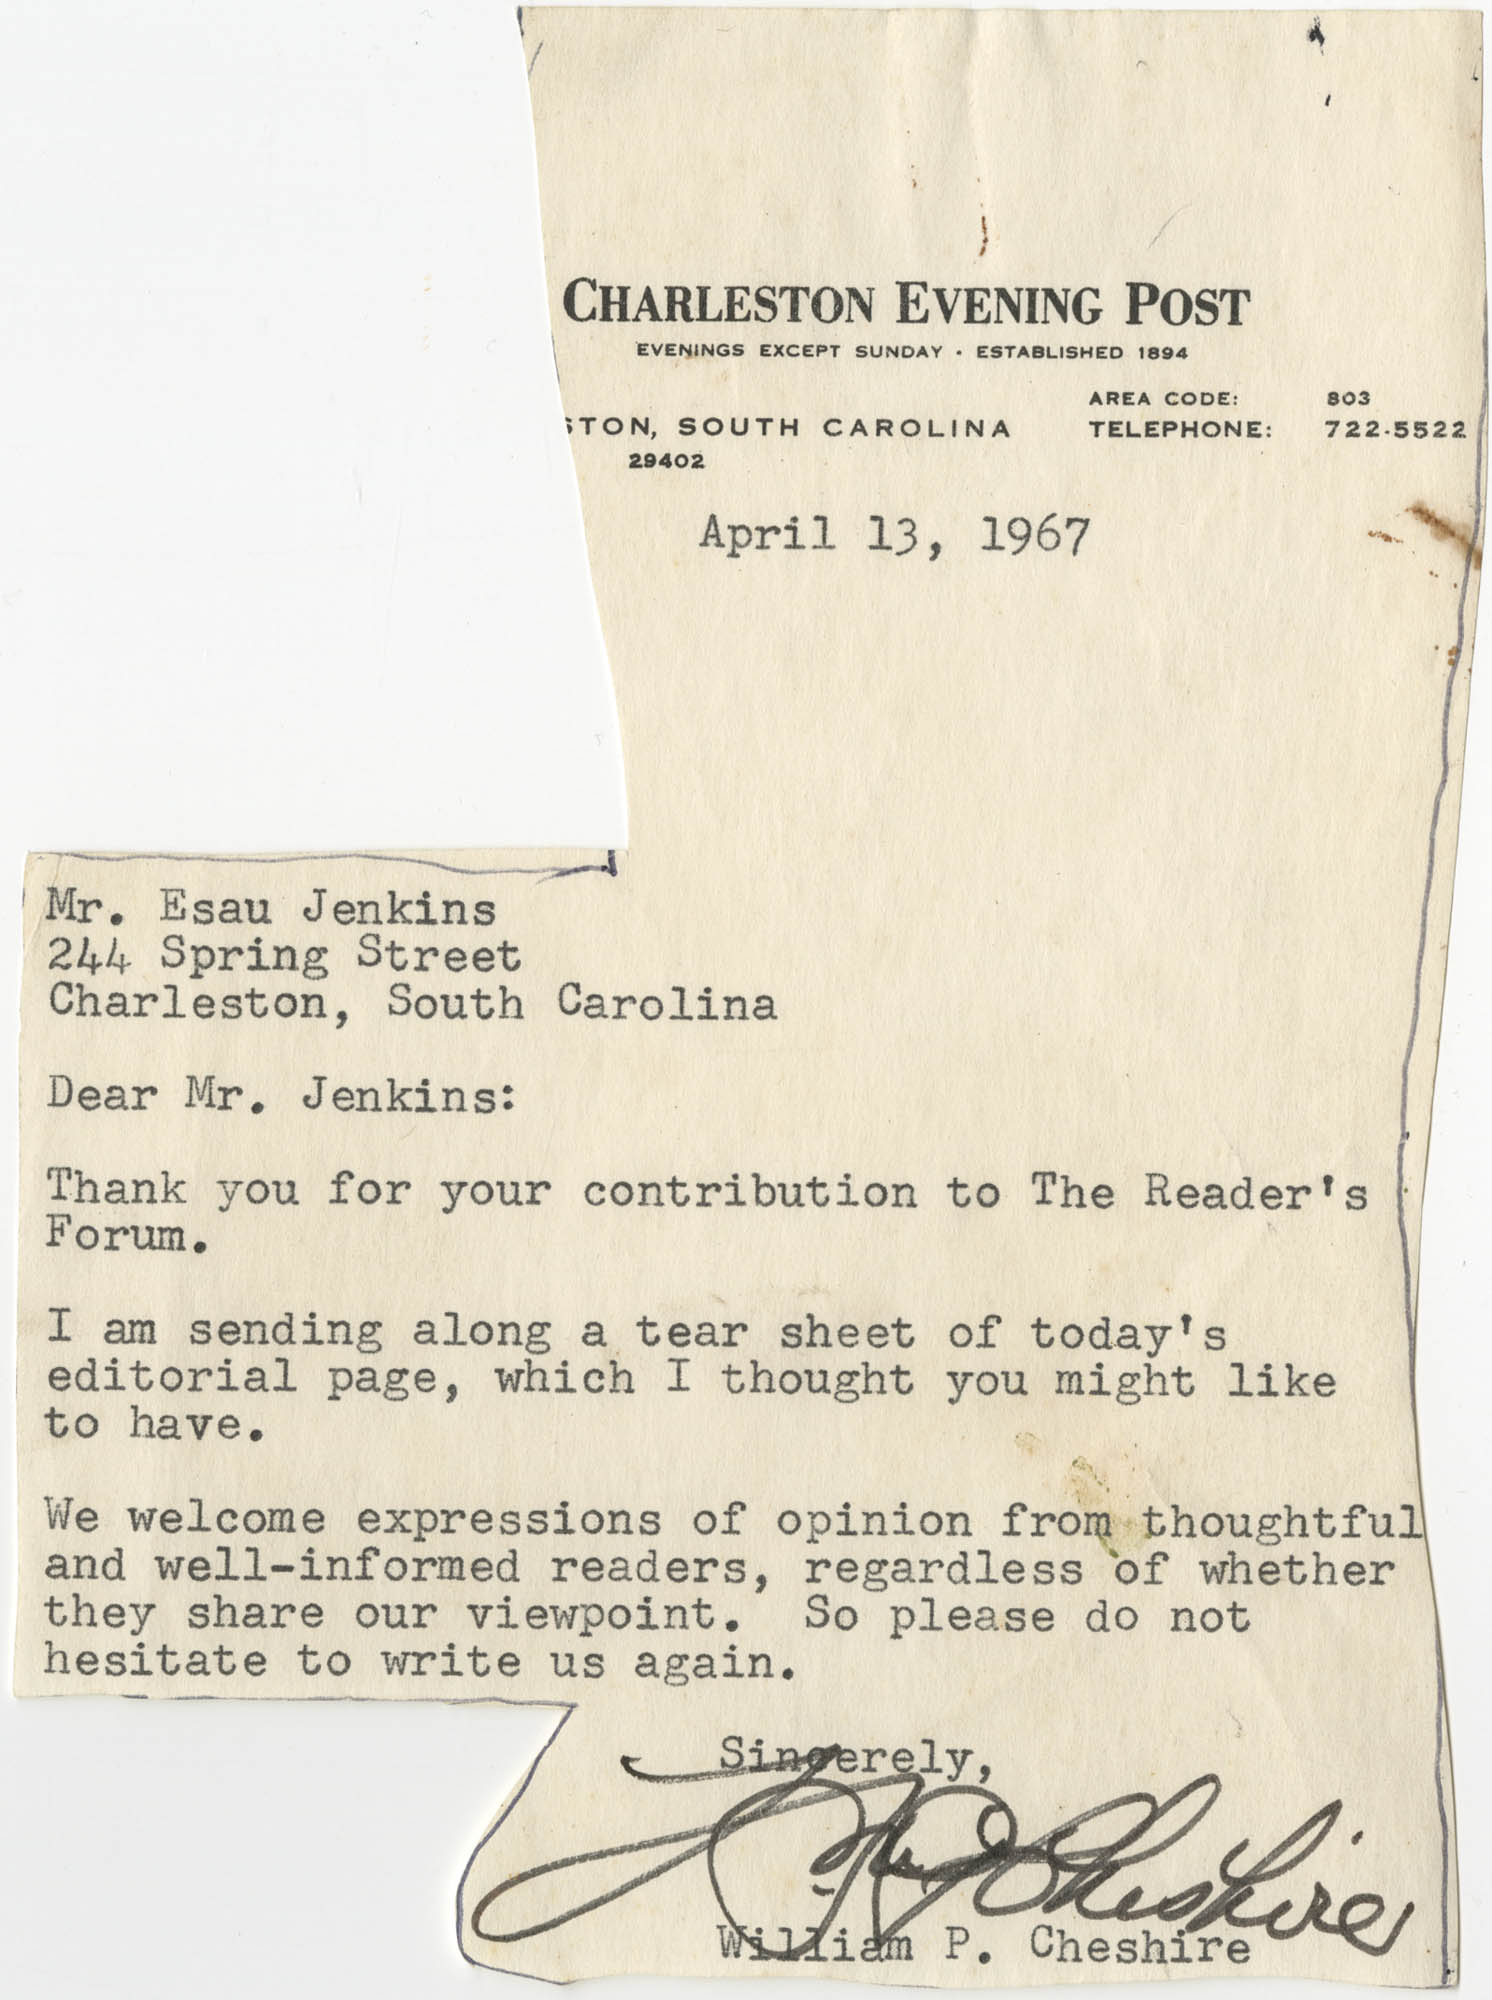 Letter from William P. Cheshire to Esau Jenkins, April 13, 1967